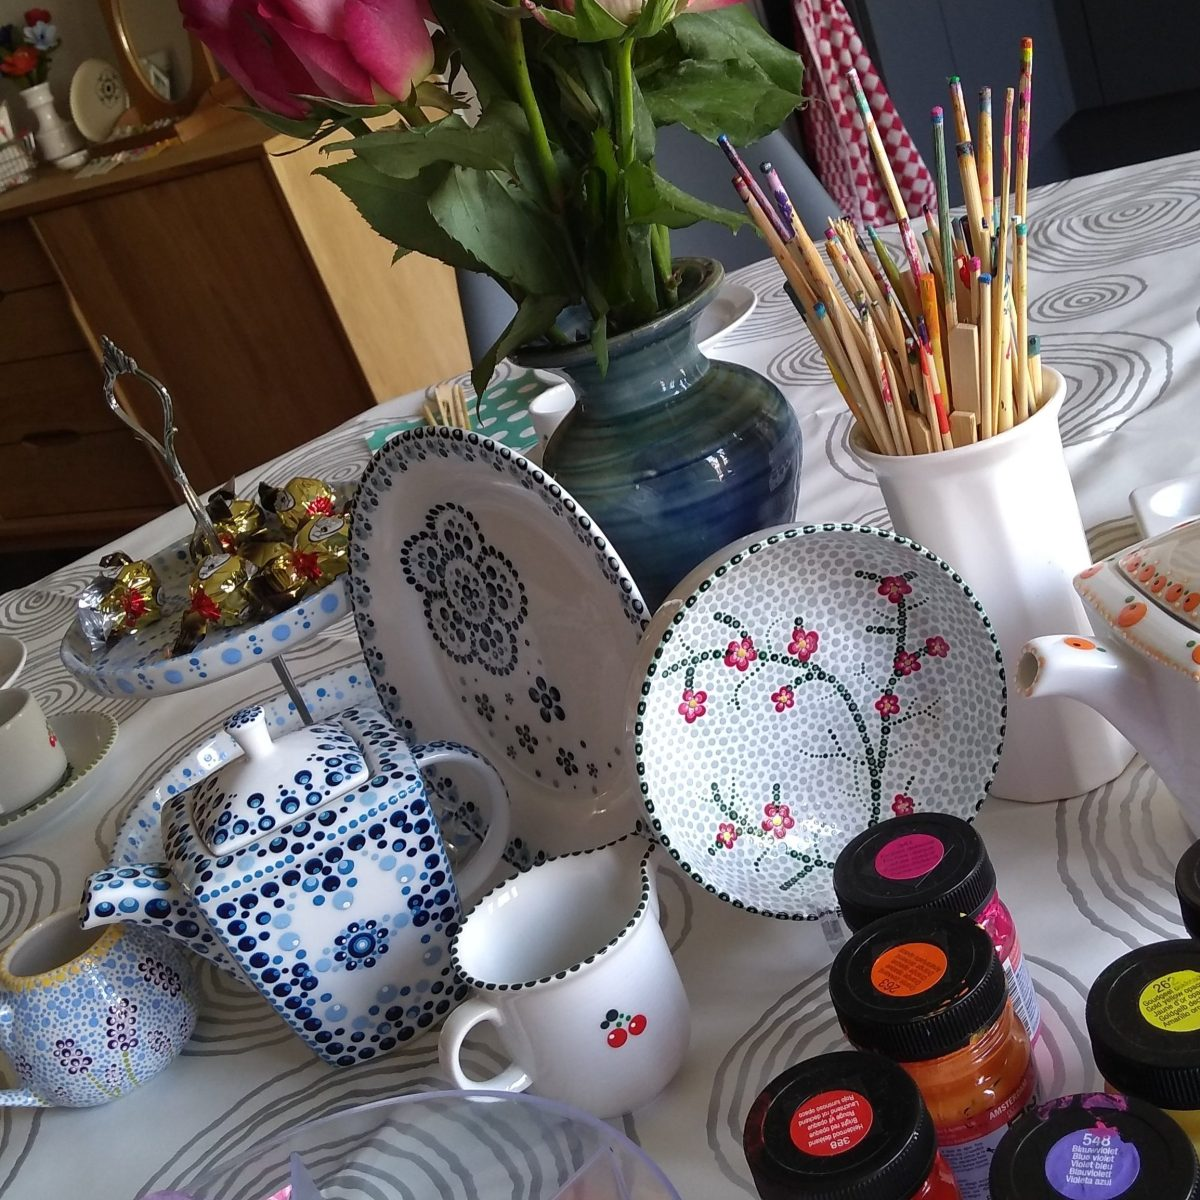 High tea met workshop zaterdag 18 mei 2019